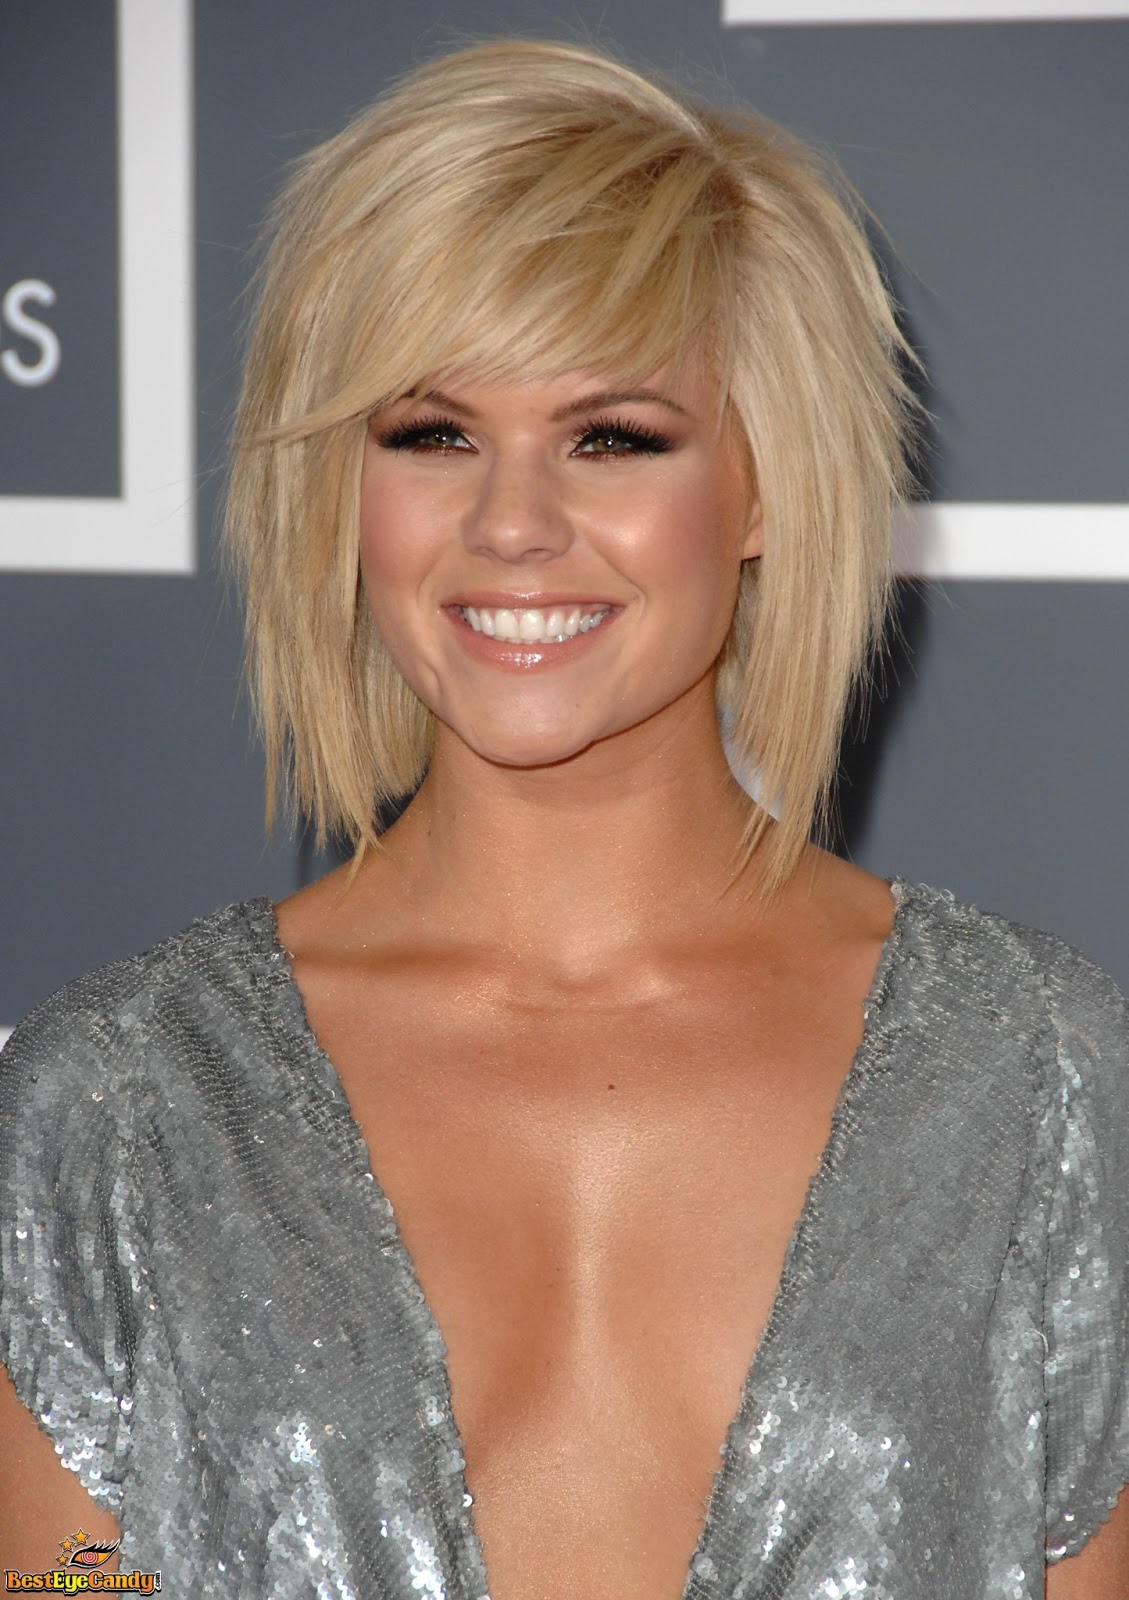 celebrity hairstyle haircut ideas: kimberly caldwell